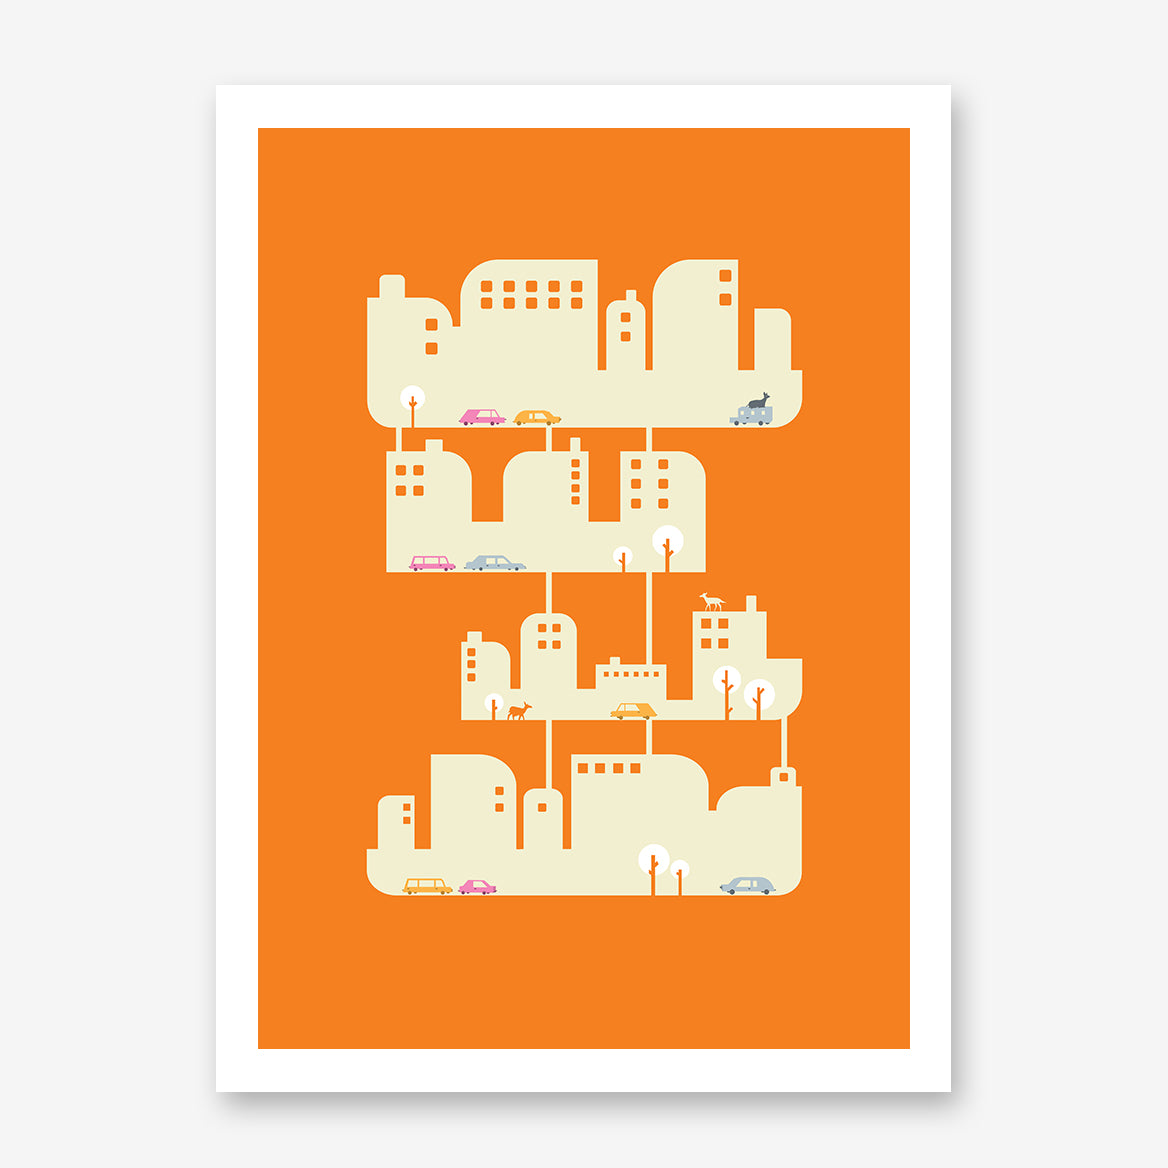 Architecture illustration print with graphic houses and cars, on orange background.